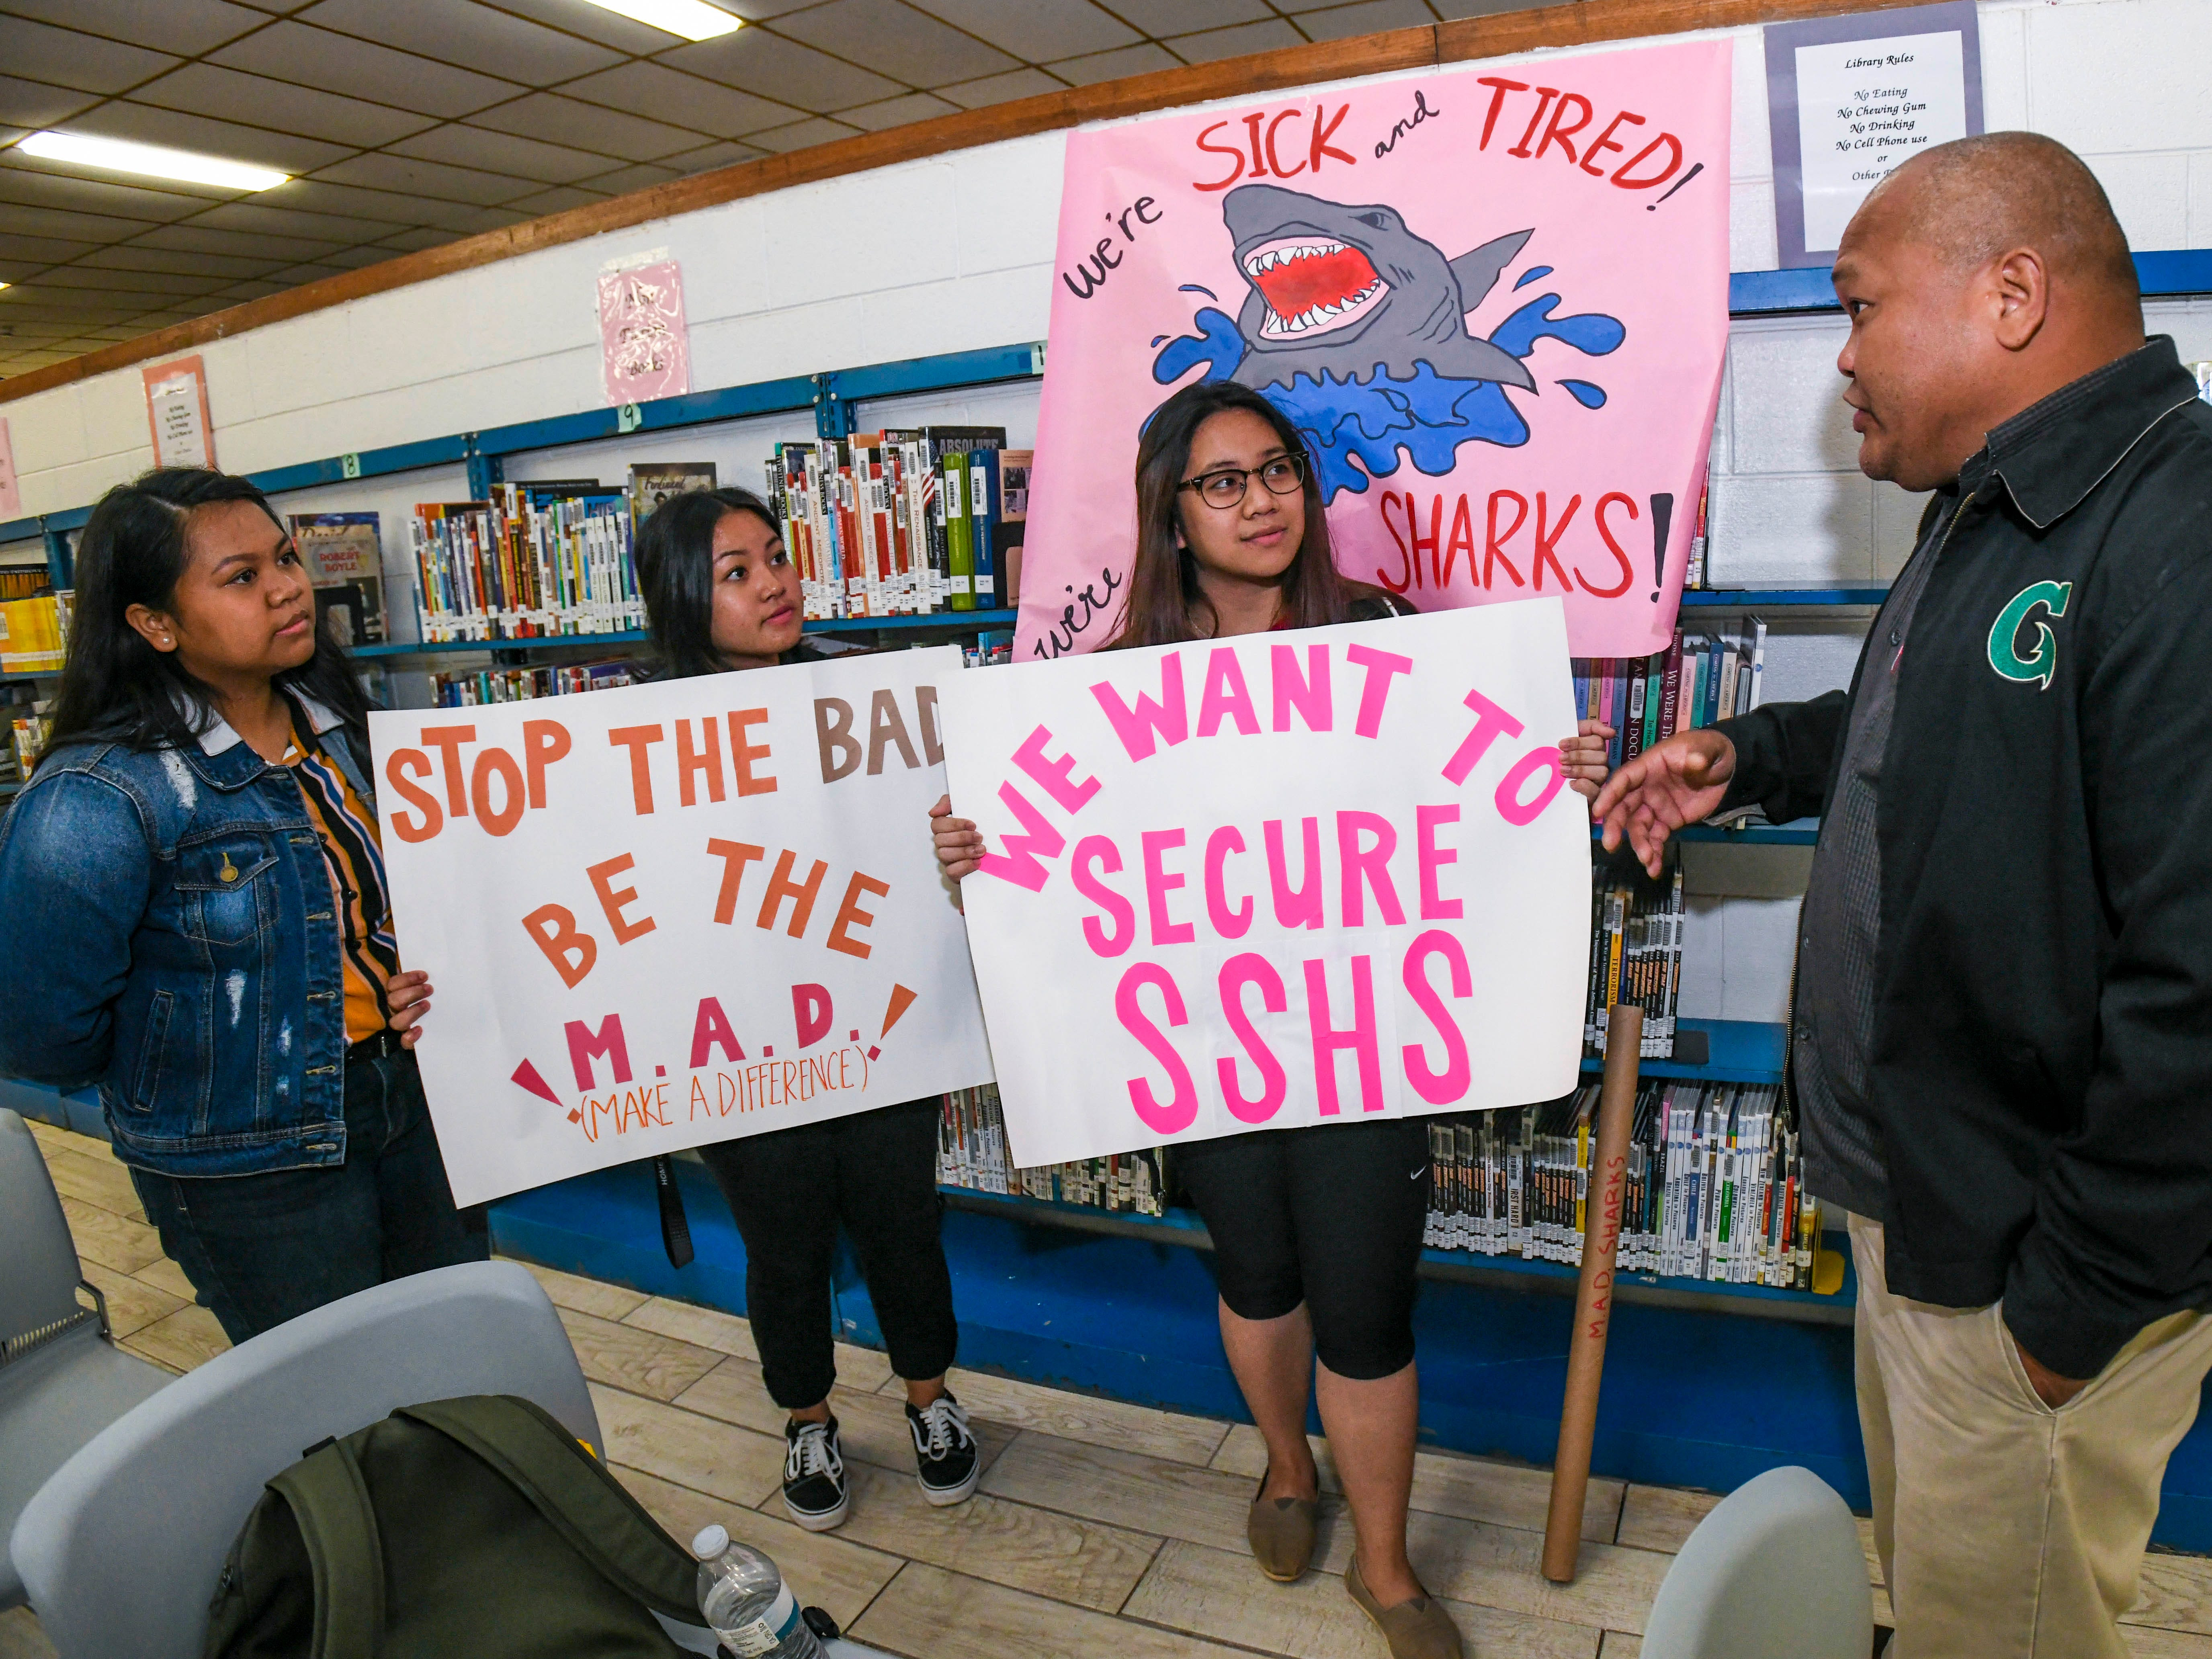 Guam Education Board Chairman Mark Mendiola, right, engages with students, from left, Tatiana Remoket, Maria Jayna Pico and Rovielynn Menrige, as they talk about improving the security and safety at the SImon Sanchez High School campus in Yigo on Friday, Feb. 8, 2019.